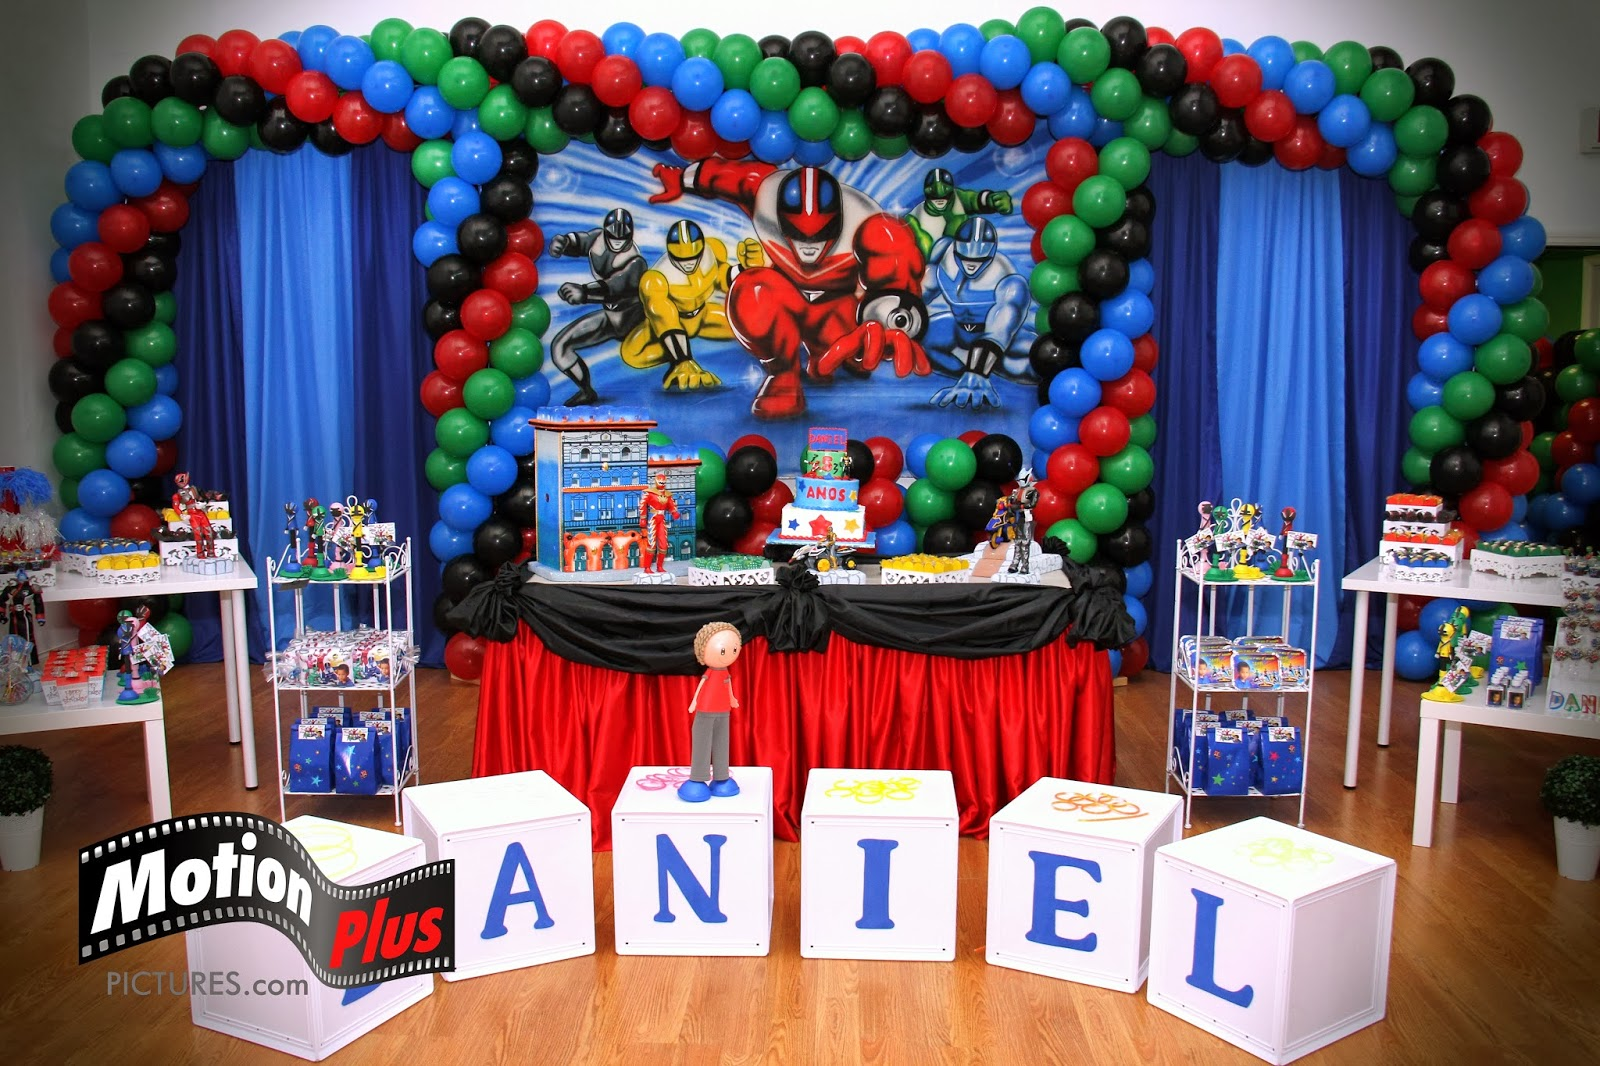 Motion Plus Pictures Transformers Themed Birthday Party Ideas